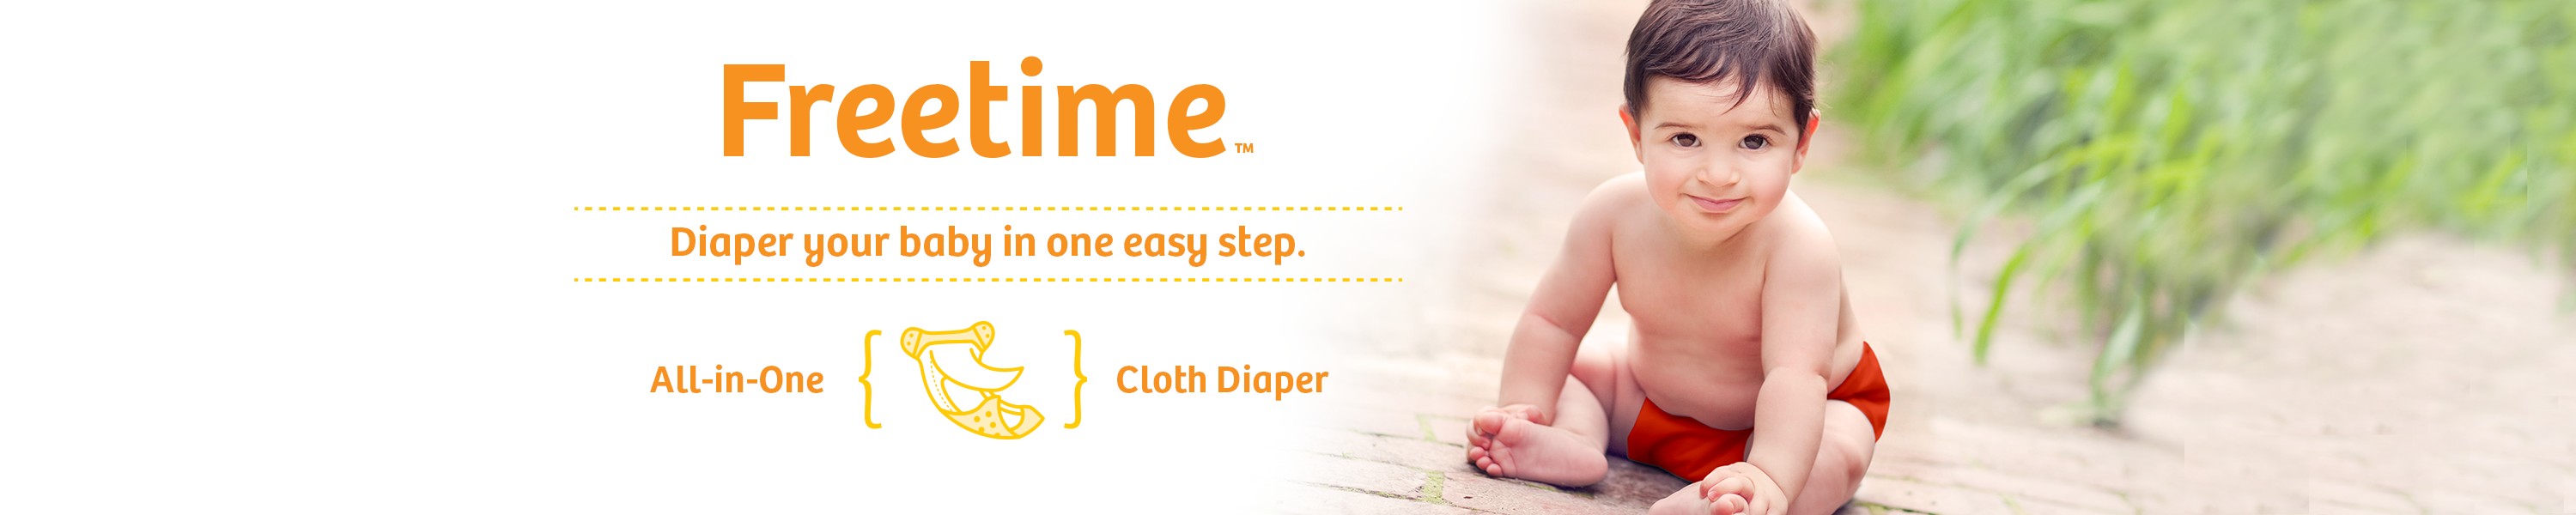 Image of Freetime! Diaper your baby in on easy step.